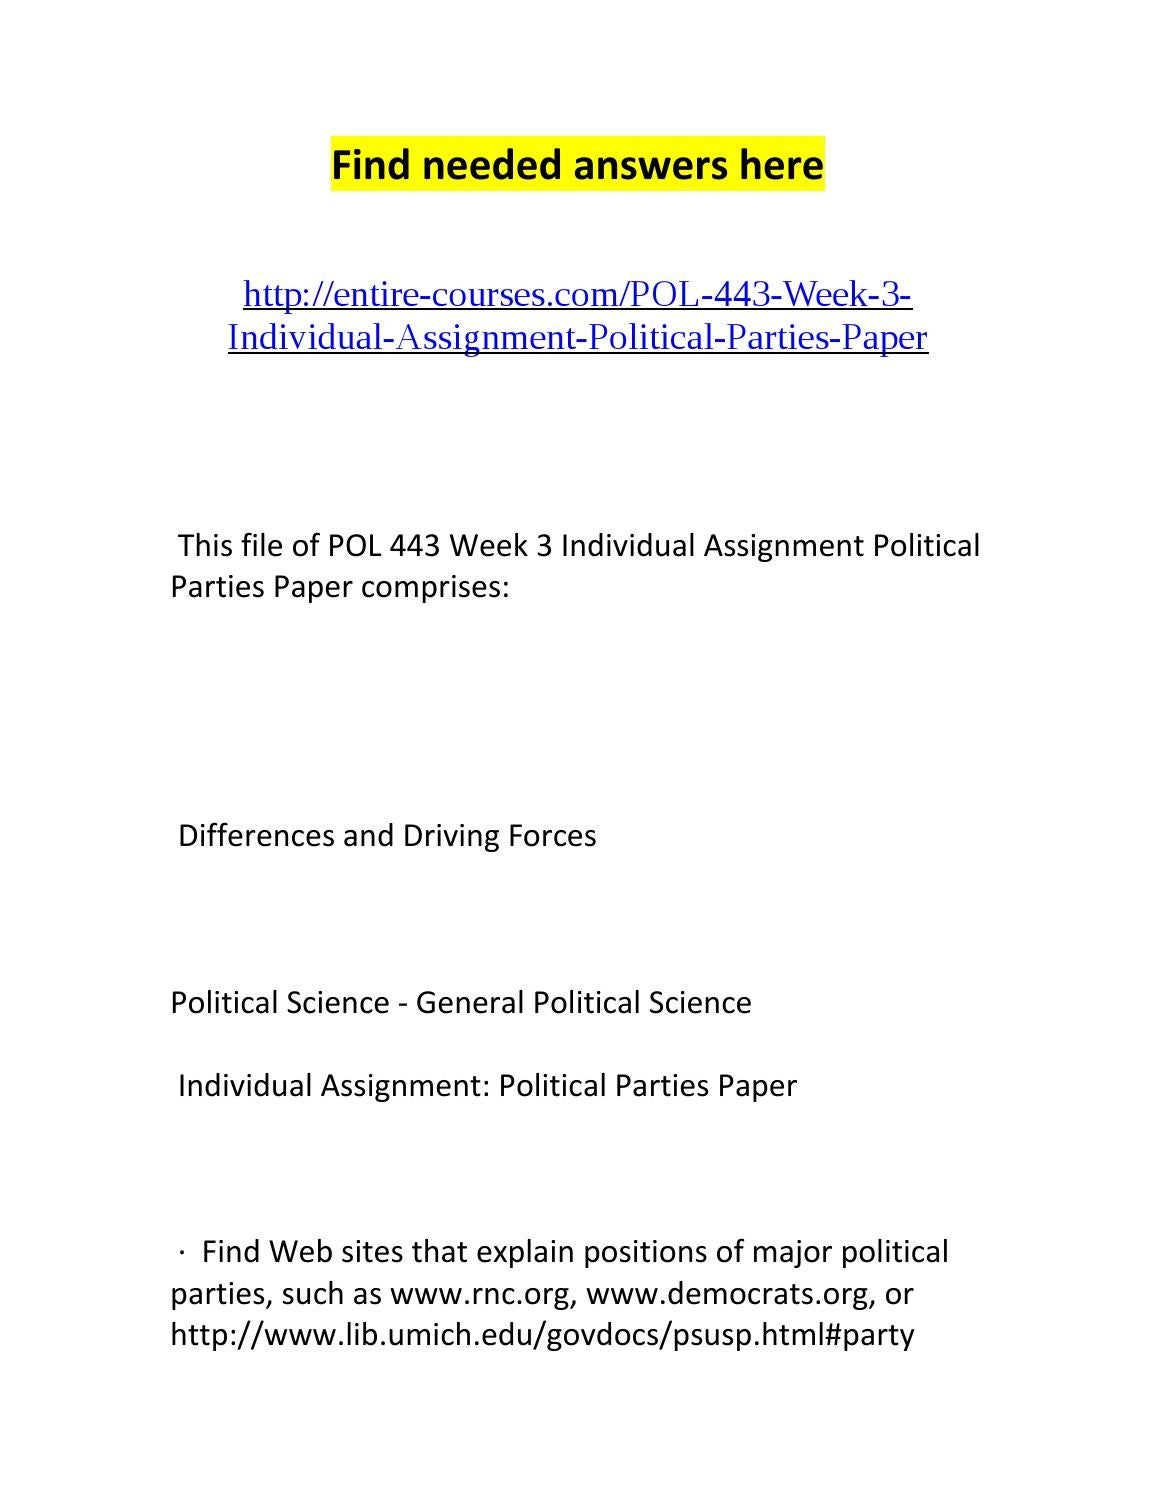 Political parties: a selection of sites